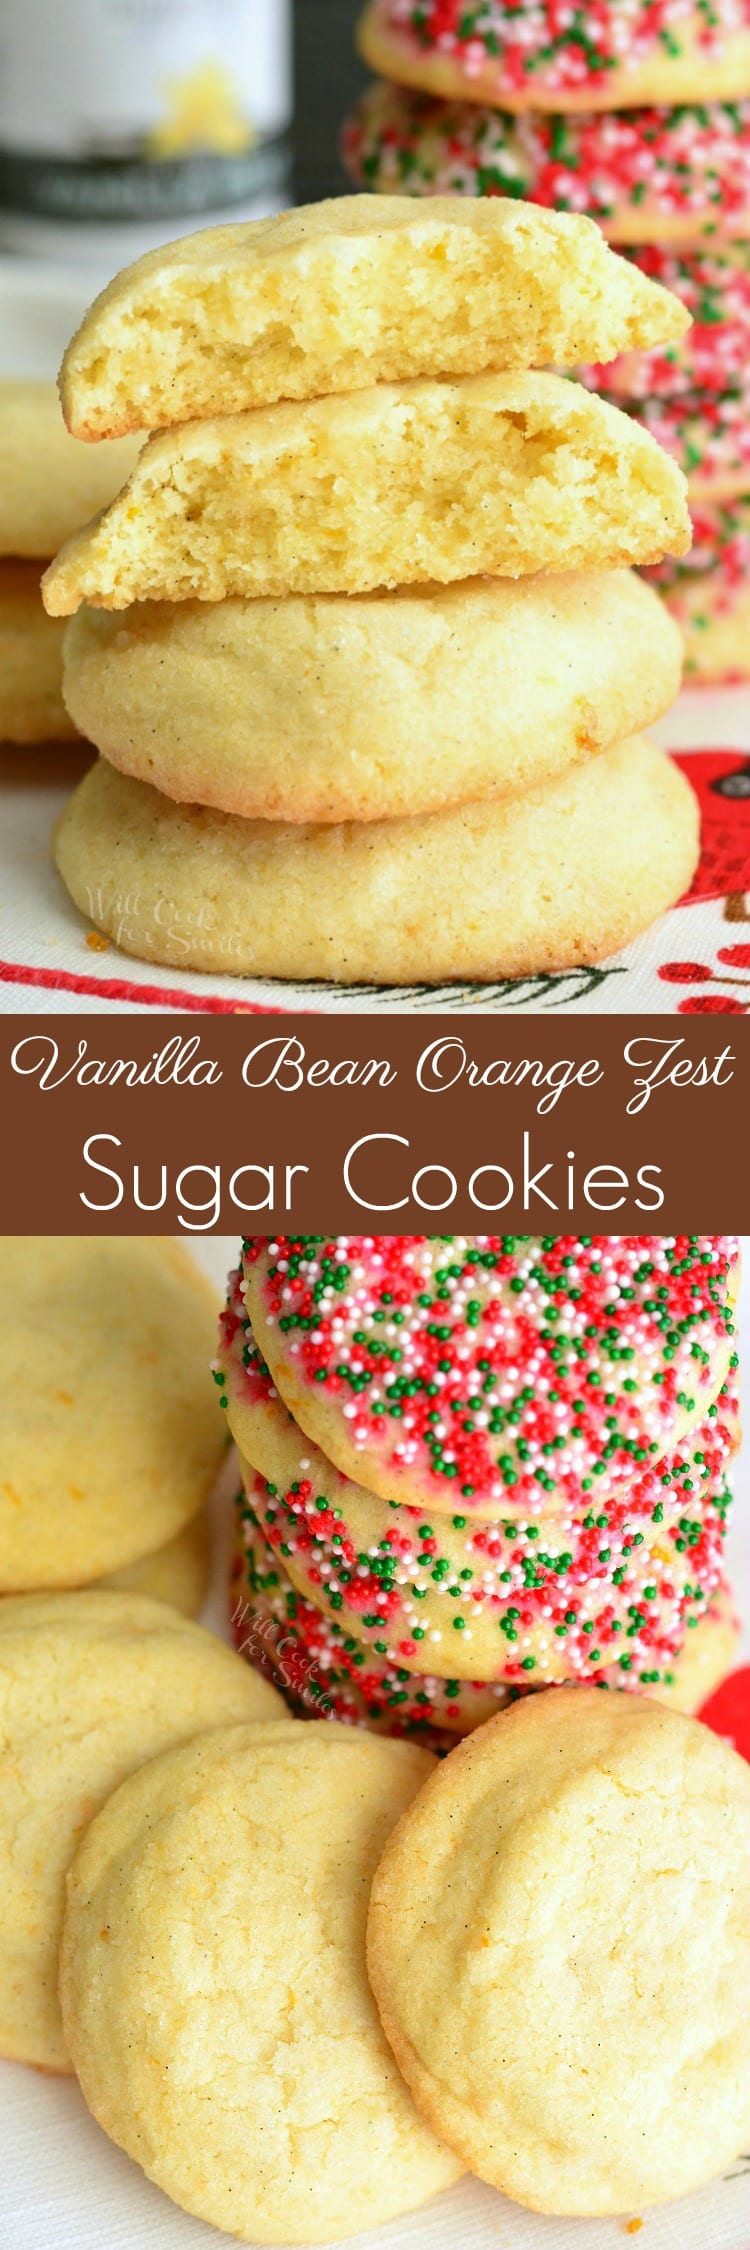 Vanilla Bean Orange Sugar Cookies. These soft and chewy sugar cookies are made with vanilla bean and orange zest. Orange and vanilla flavors in these cookies is exquisite. #sugarcookies